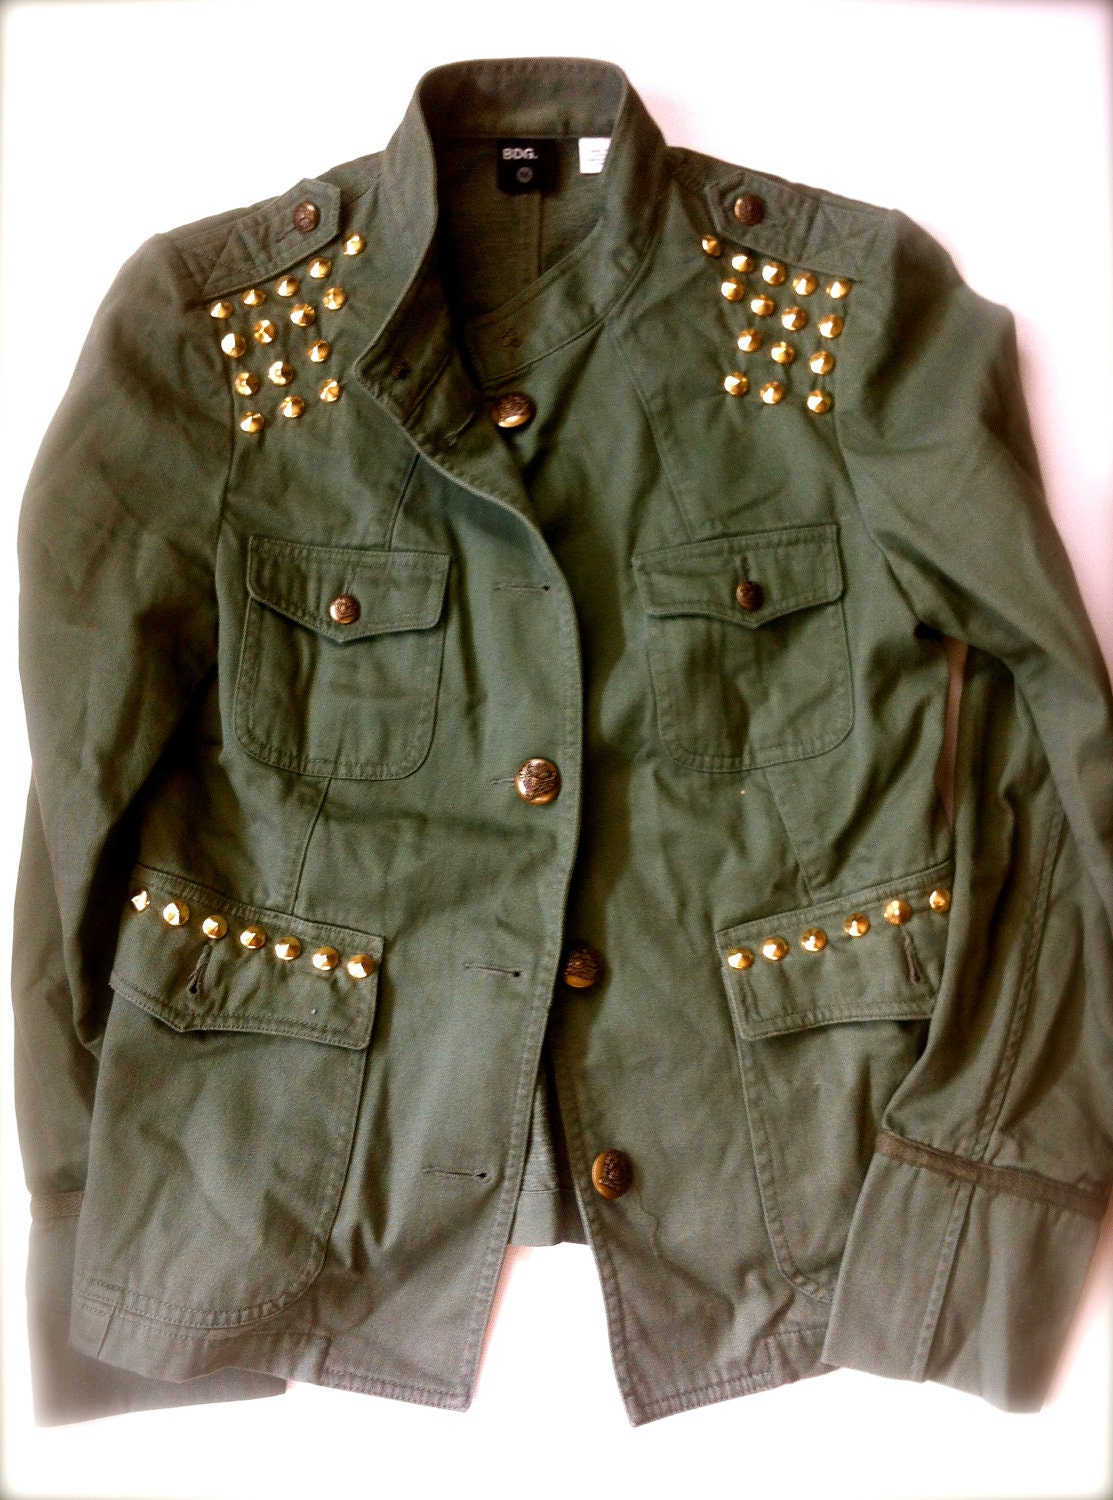 The Top 10 military jackets for women that follow feel structured, yet lived-in. Finding the perfect one is all in the fit, which is why the variance in length, pocket design, and slimmed silhouettes set these 10 picks apart from the rest.